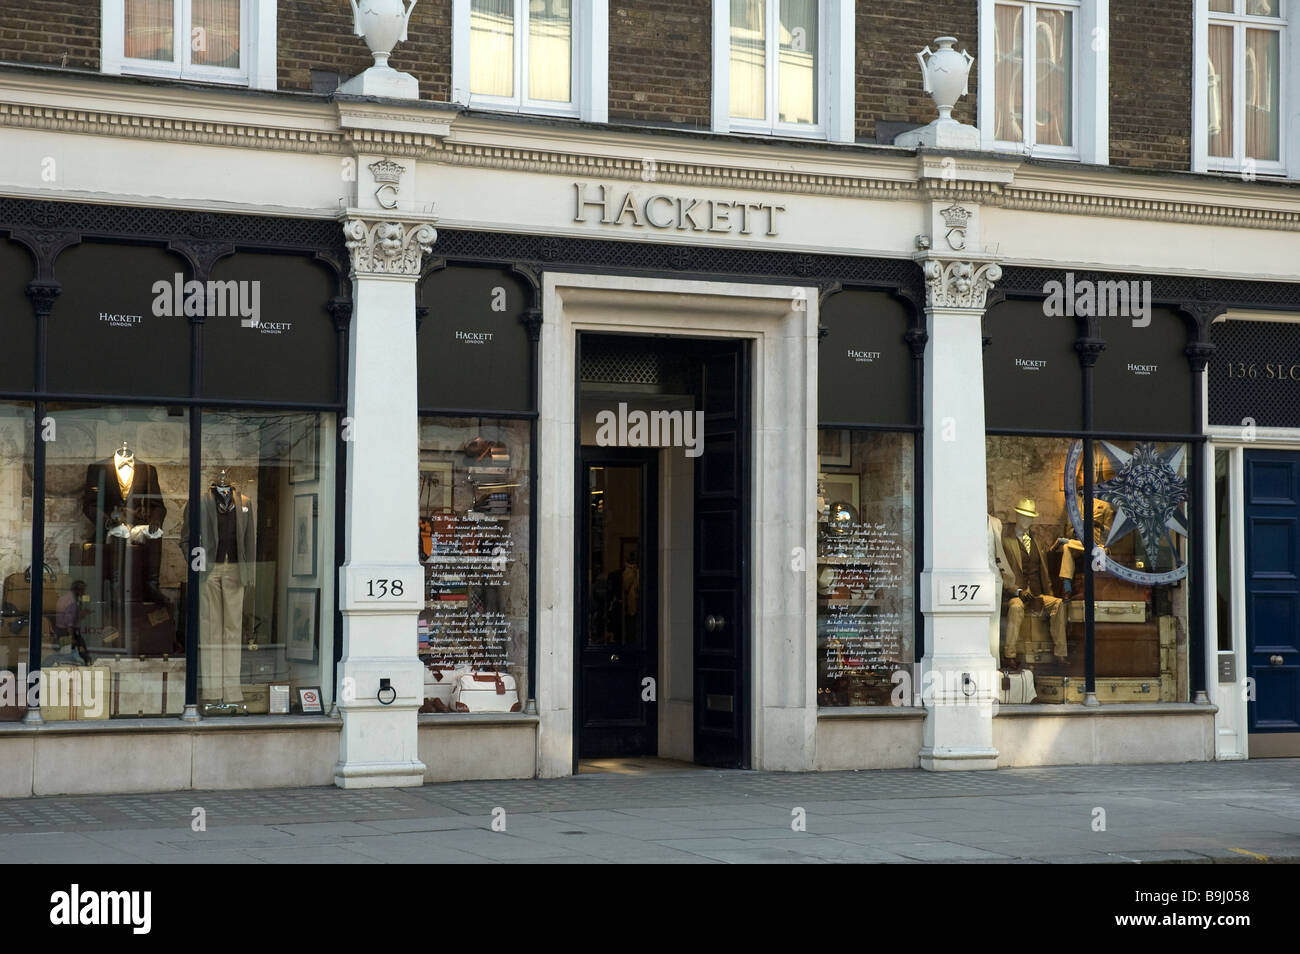 HACKETT FASHIONABLE MENS OUTFITTERS SLOAN STREET LONDON UK - Stock Image